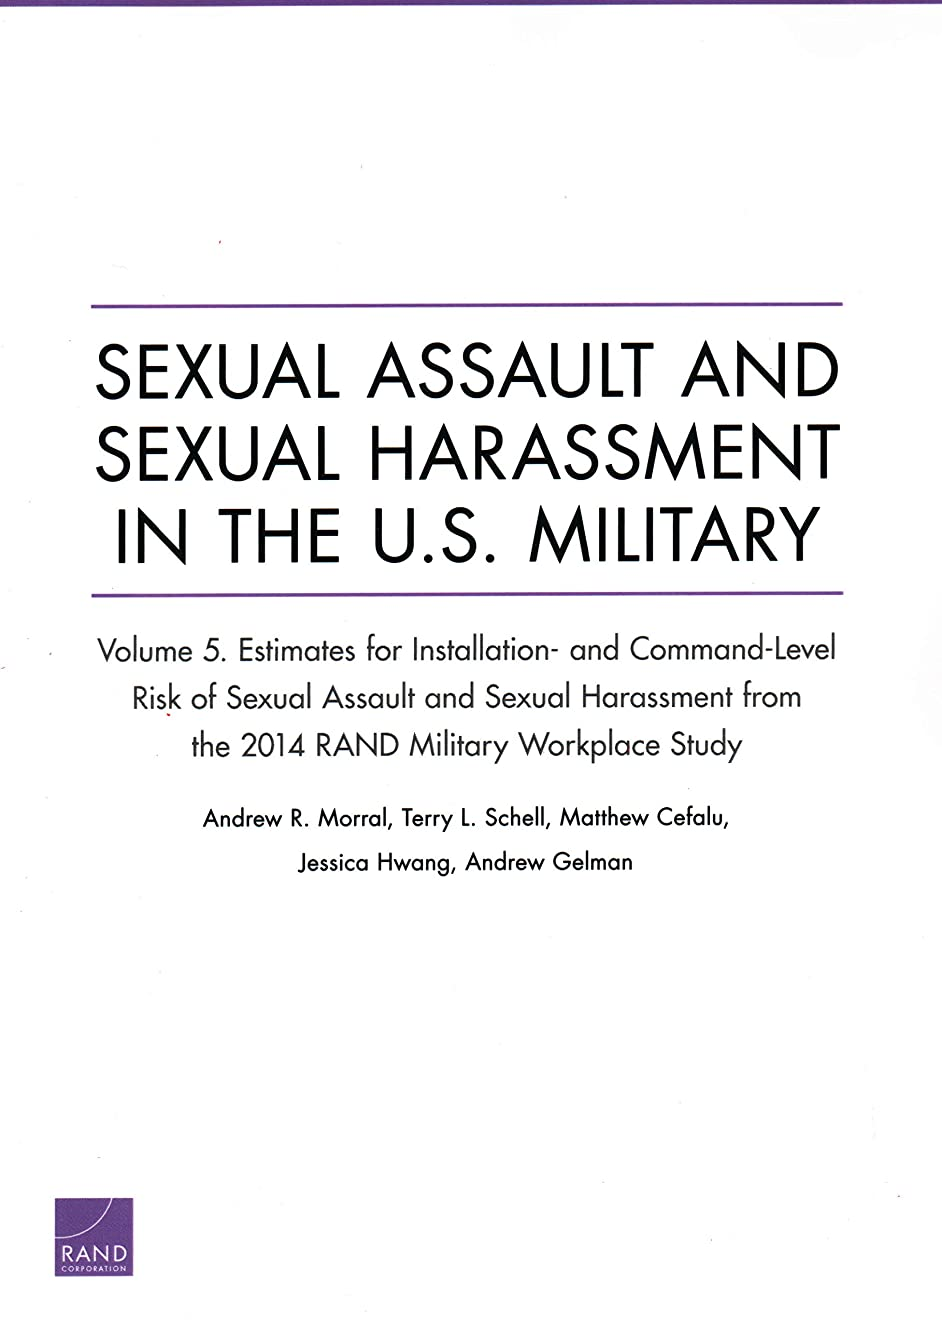 Sexual Assault and Sexual Harassment in the U.S. Military: Estimates for Installation- and Command-Level Risk of Sexual Assault and Sexual Harassment ... 2014 RAND Military Workplace Study (Volume 5)